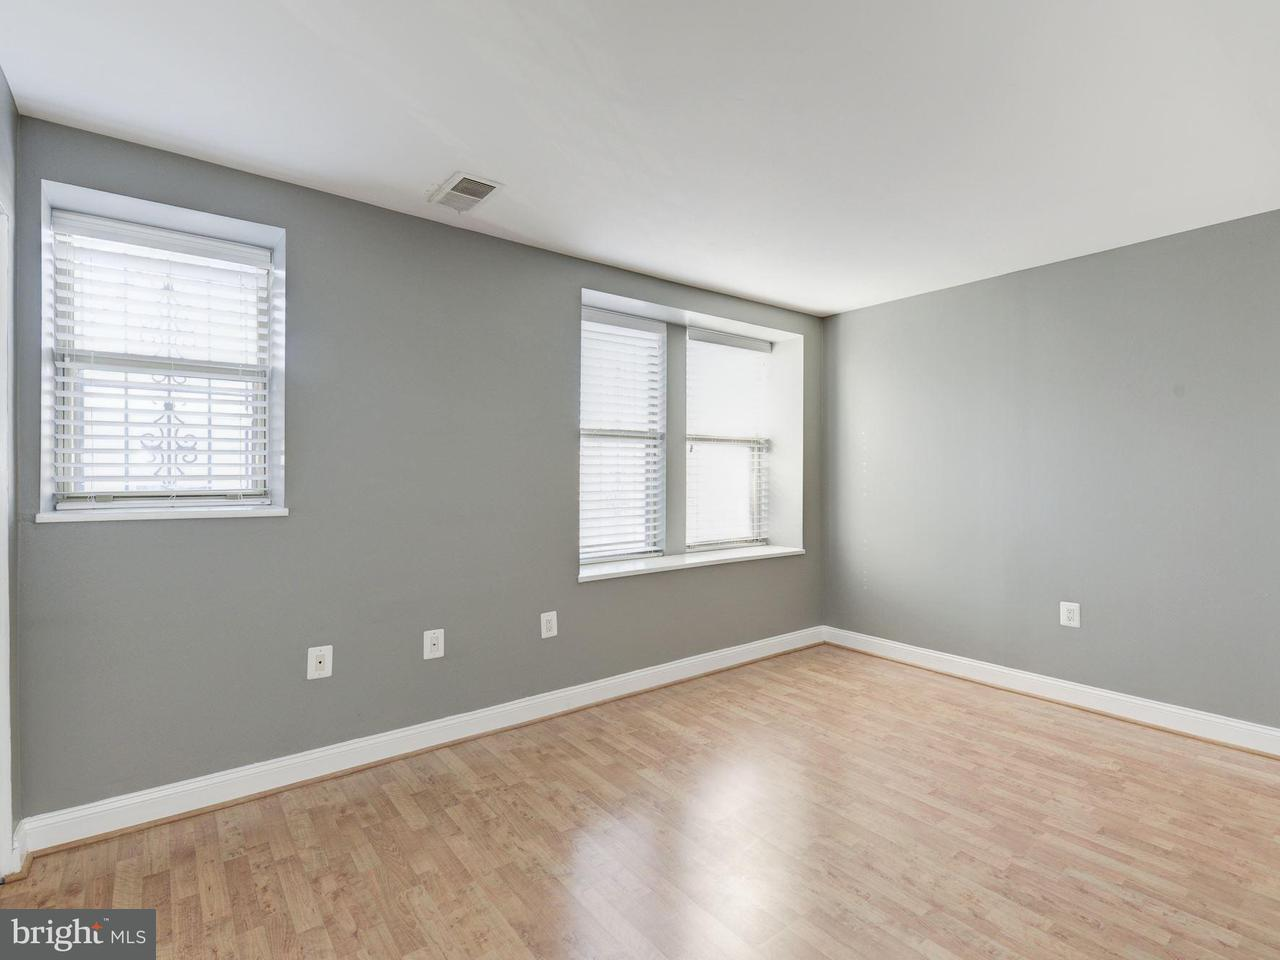 Additional photo for property listing at 2440 16th St Nw #114 2440 16th St Nw #114 Washington, Округ Колумбия 20009 Соединенные Штаты